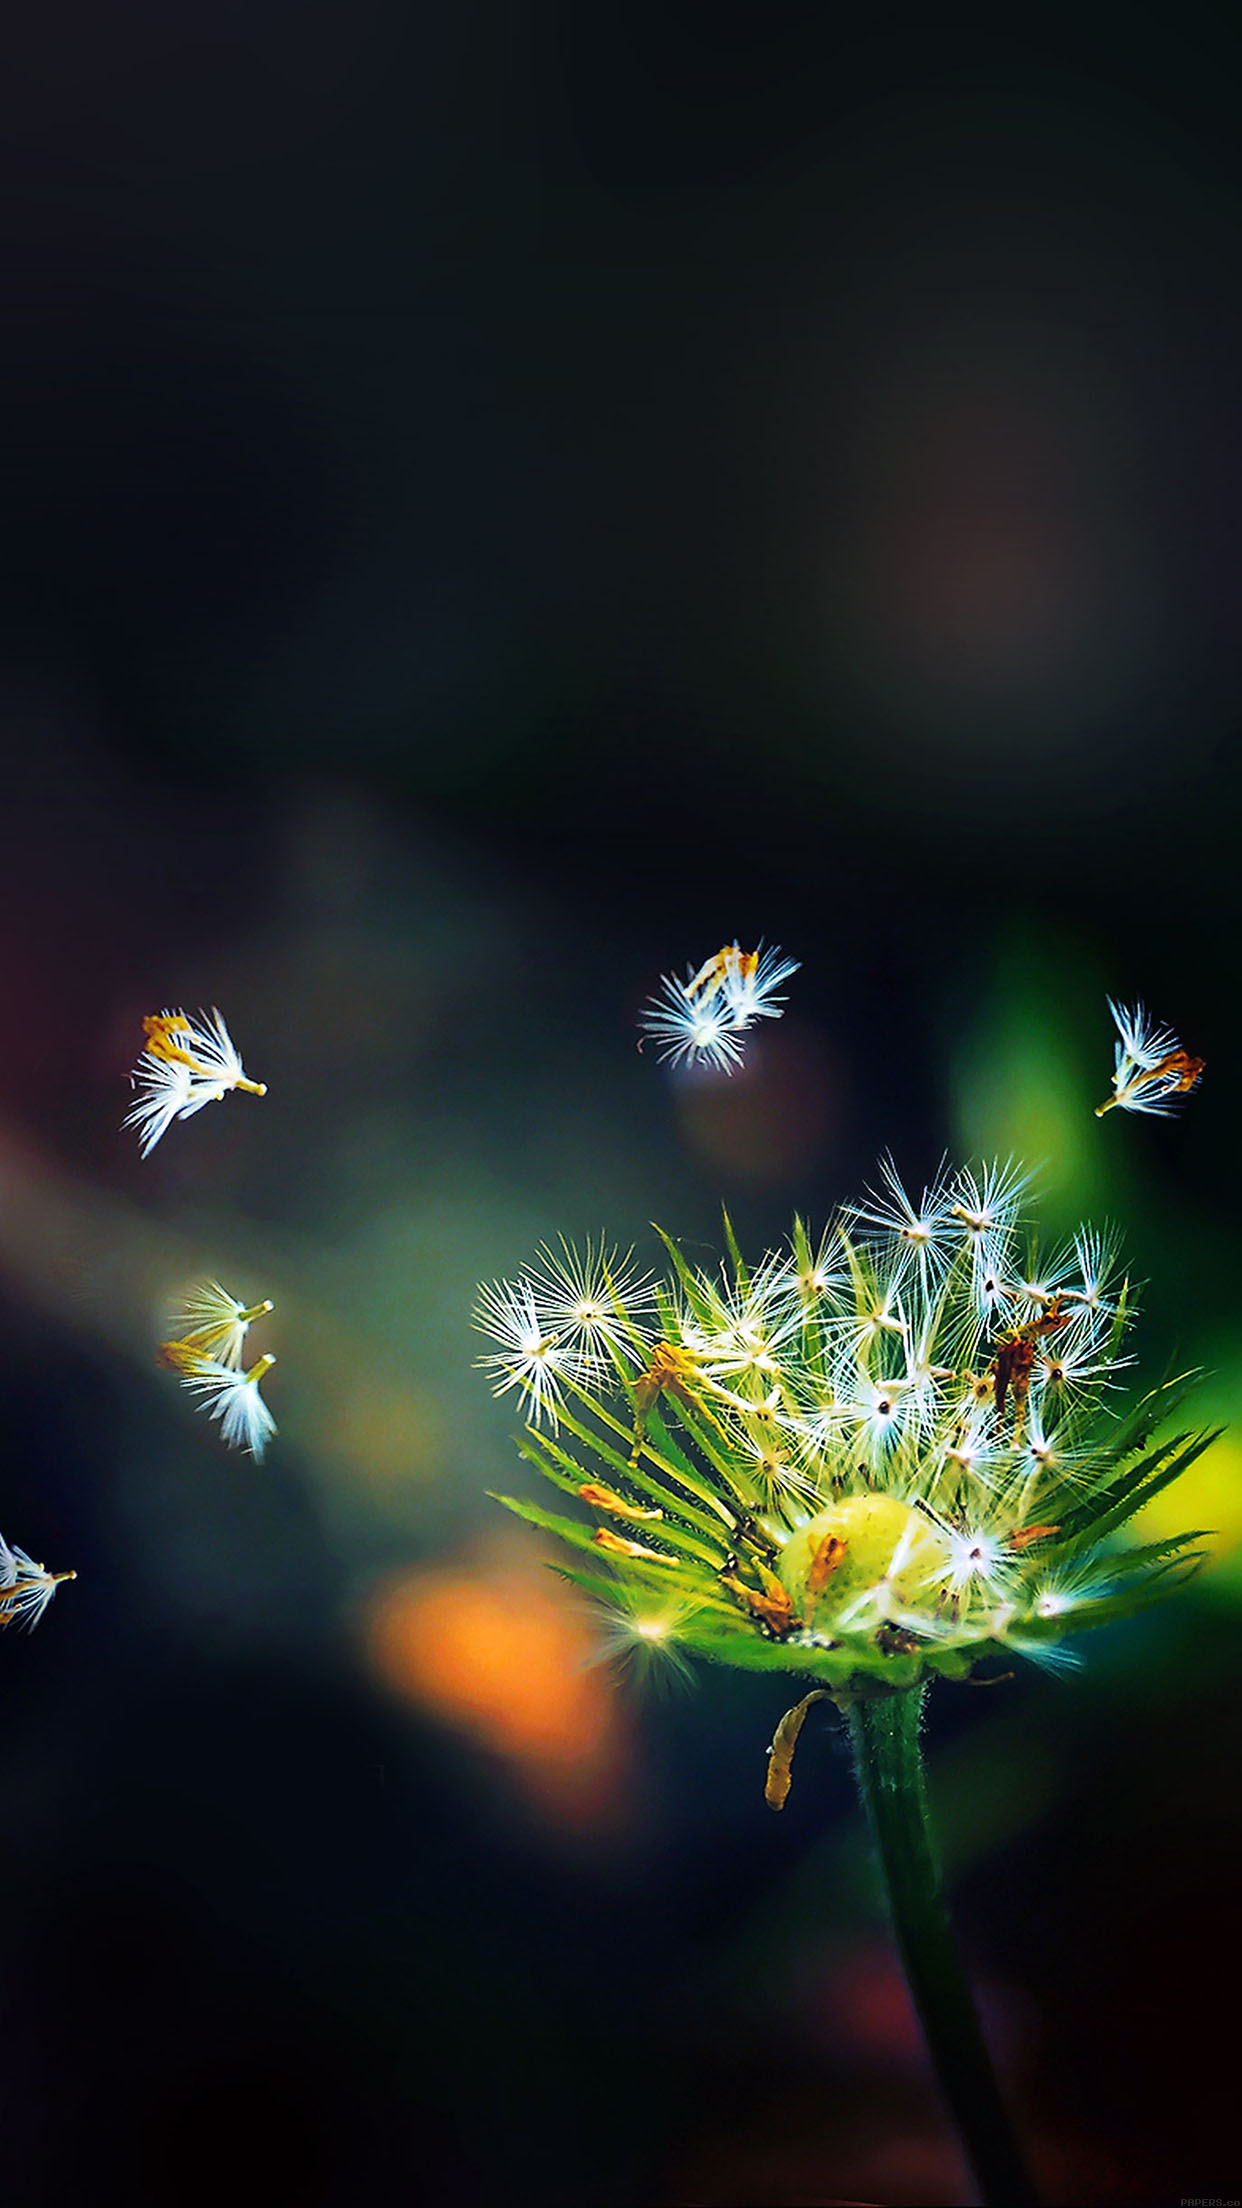 Blow Dandelion Flower Nature Android wallpaper